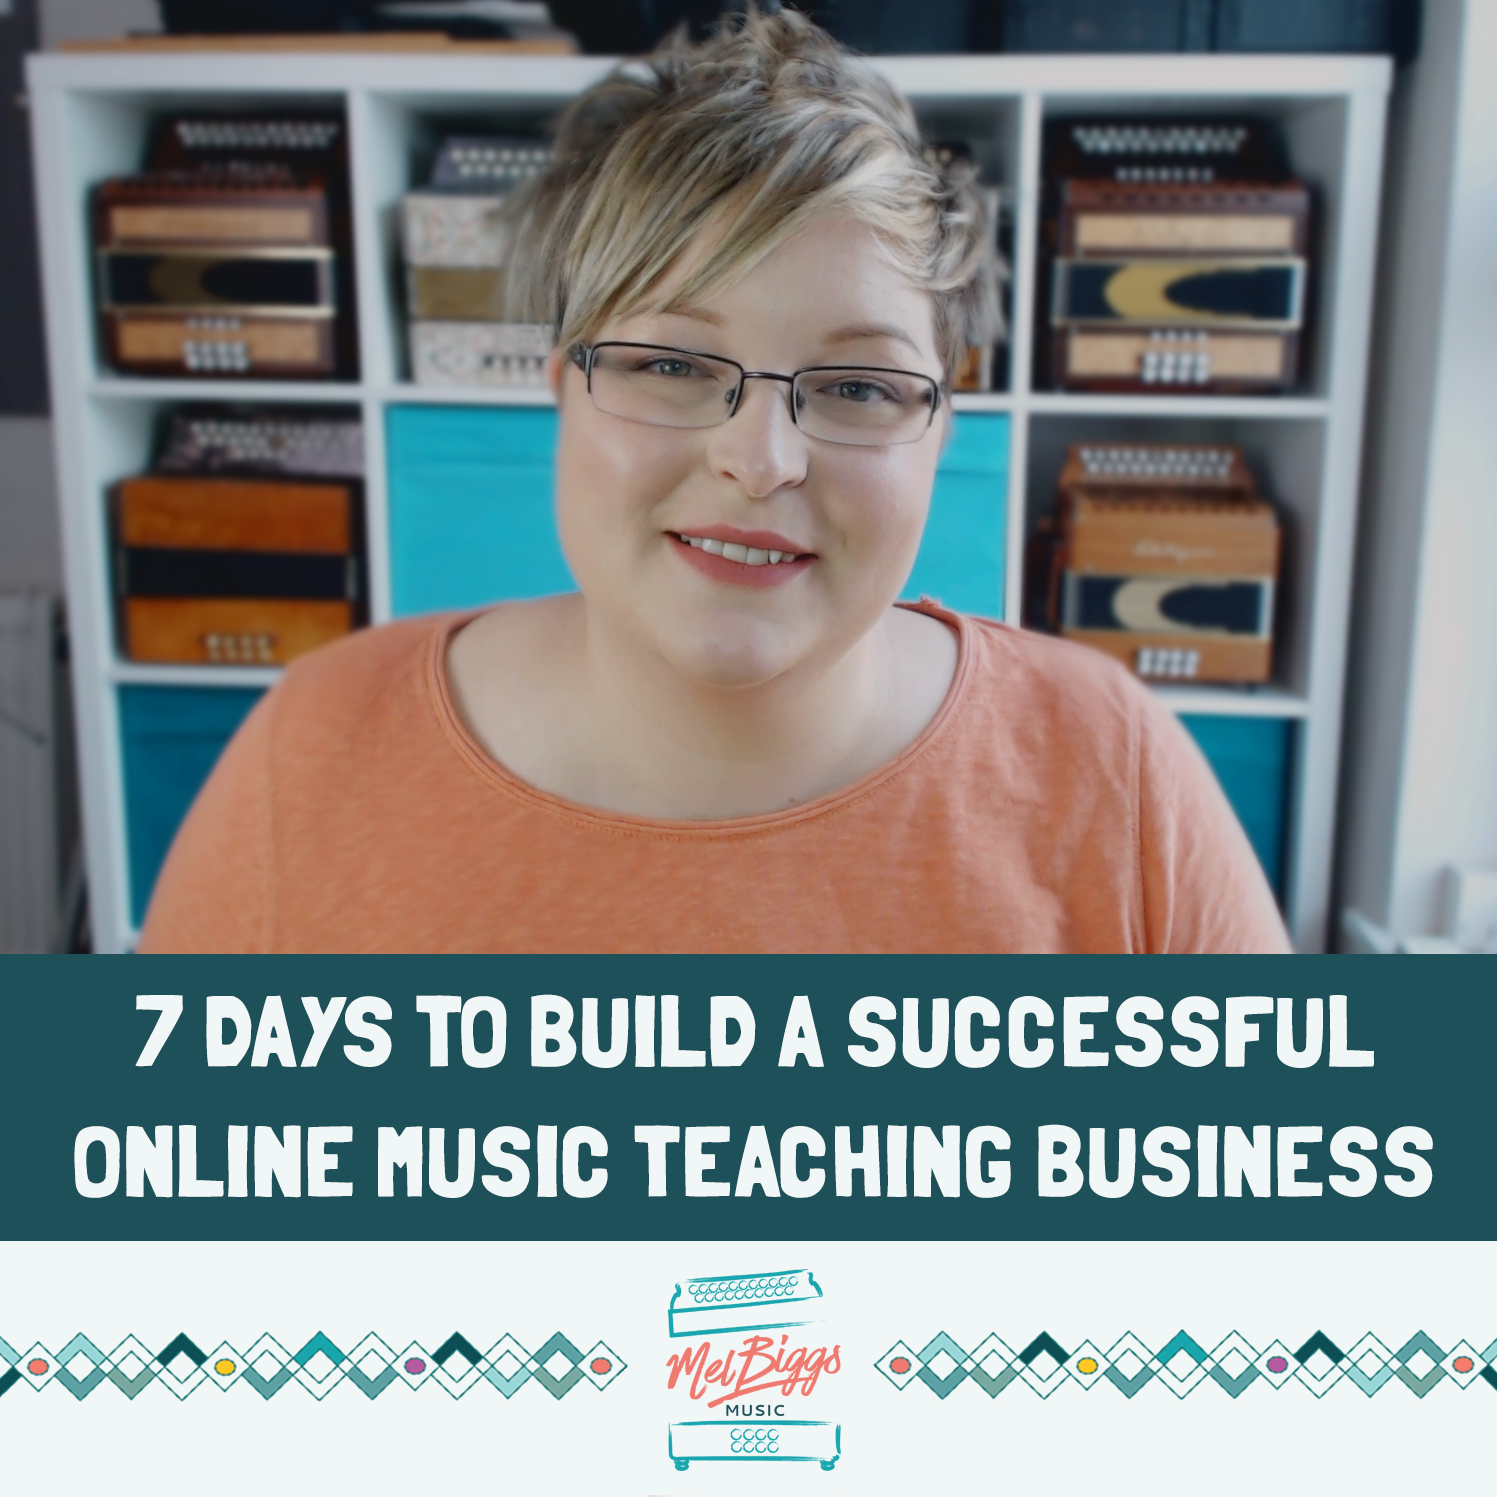 7 Days to Build a Successful Online Music Teaching Business